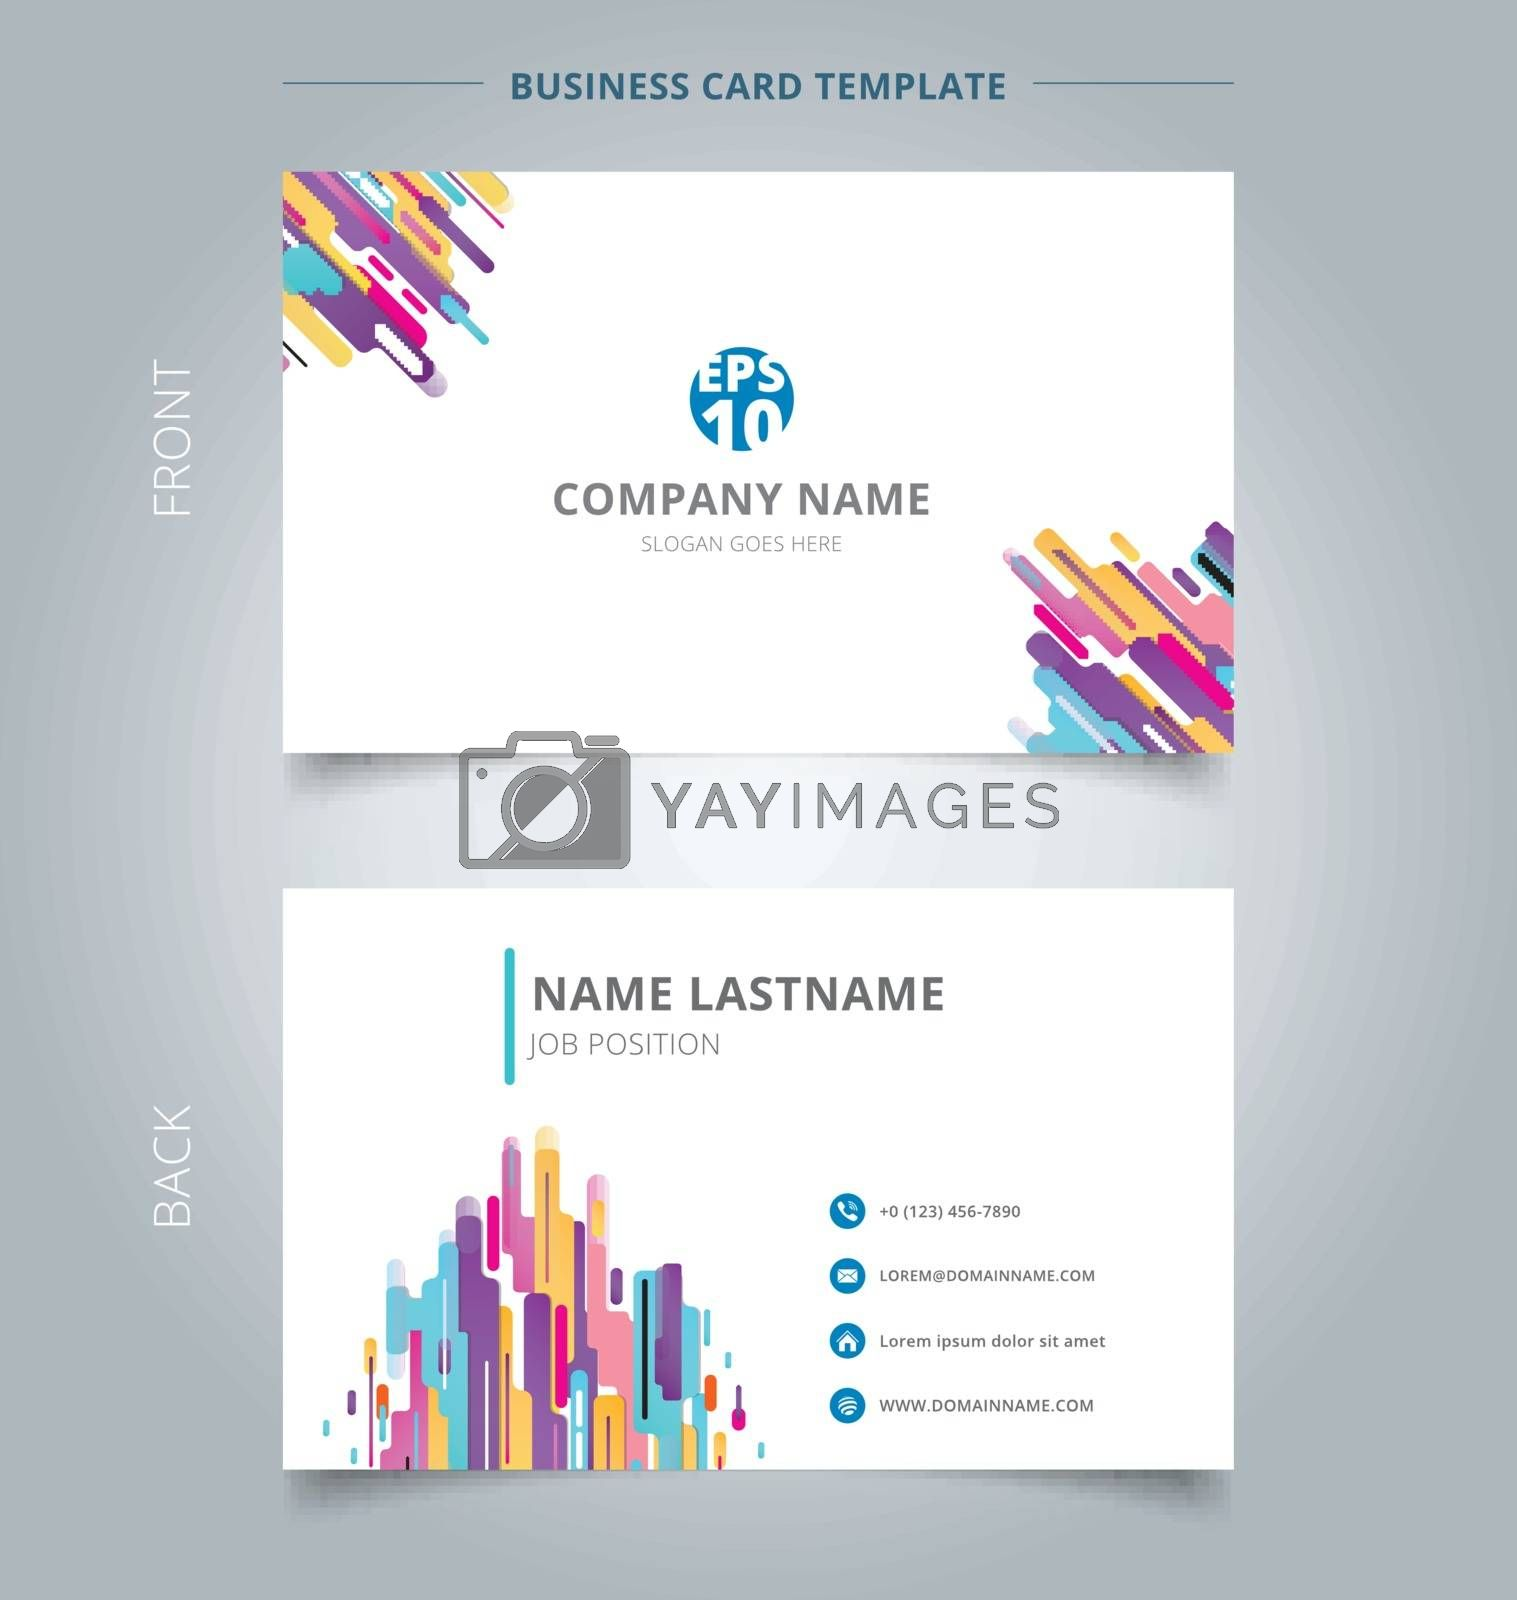 Creative business card and name card template modern style composition made of various rounded shapes colorful. Abstract concept and commercial design. vector graphic illustration